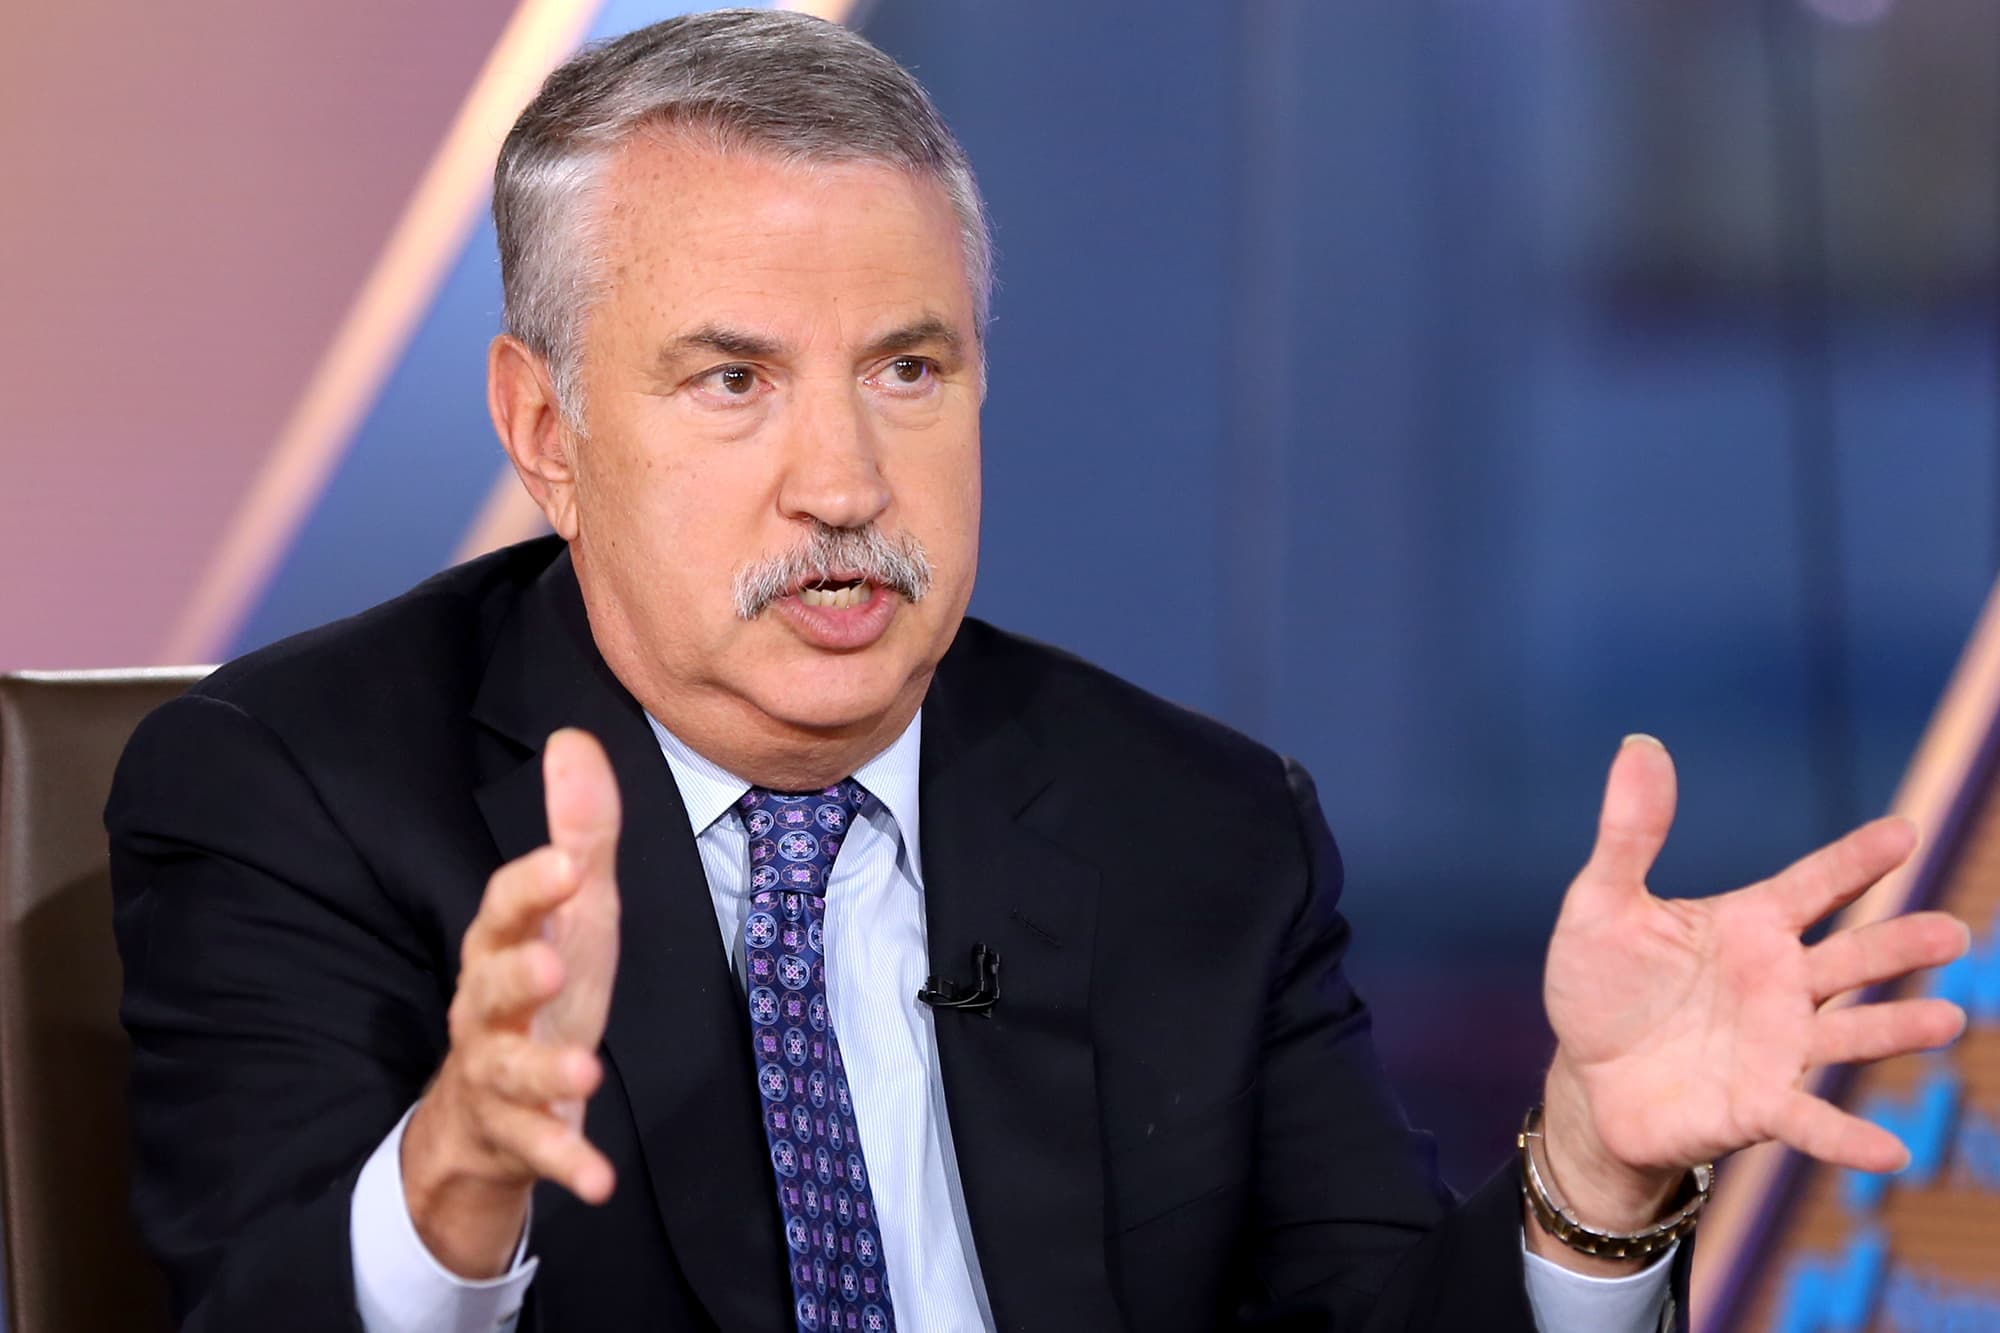 'The game had to be called' — NYT's Thomas Friedman praises Trump for taking China trade action